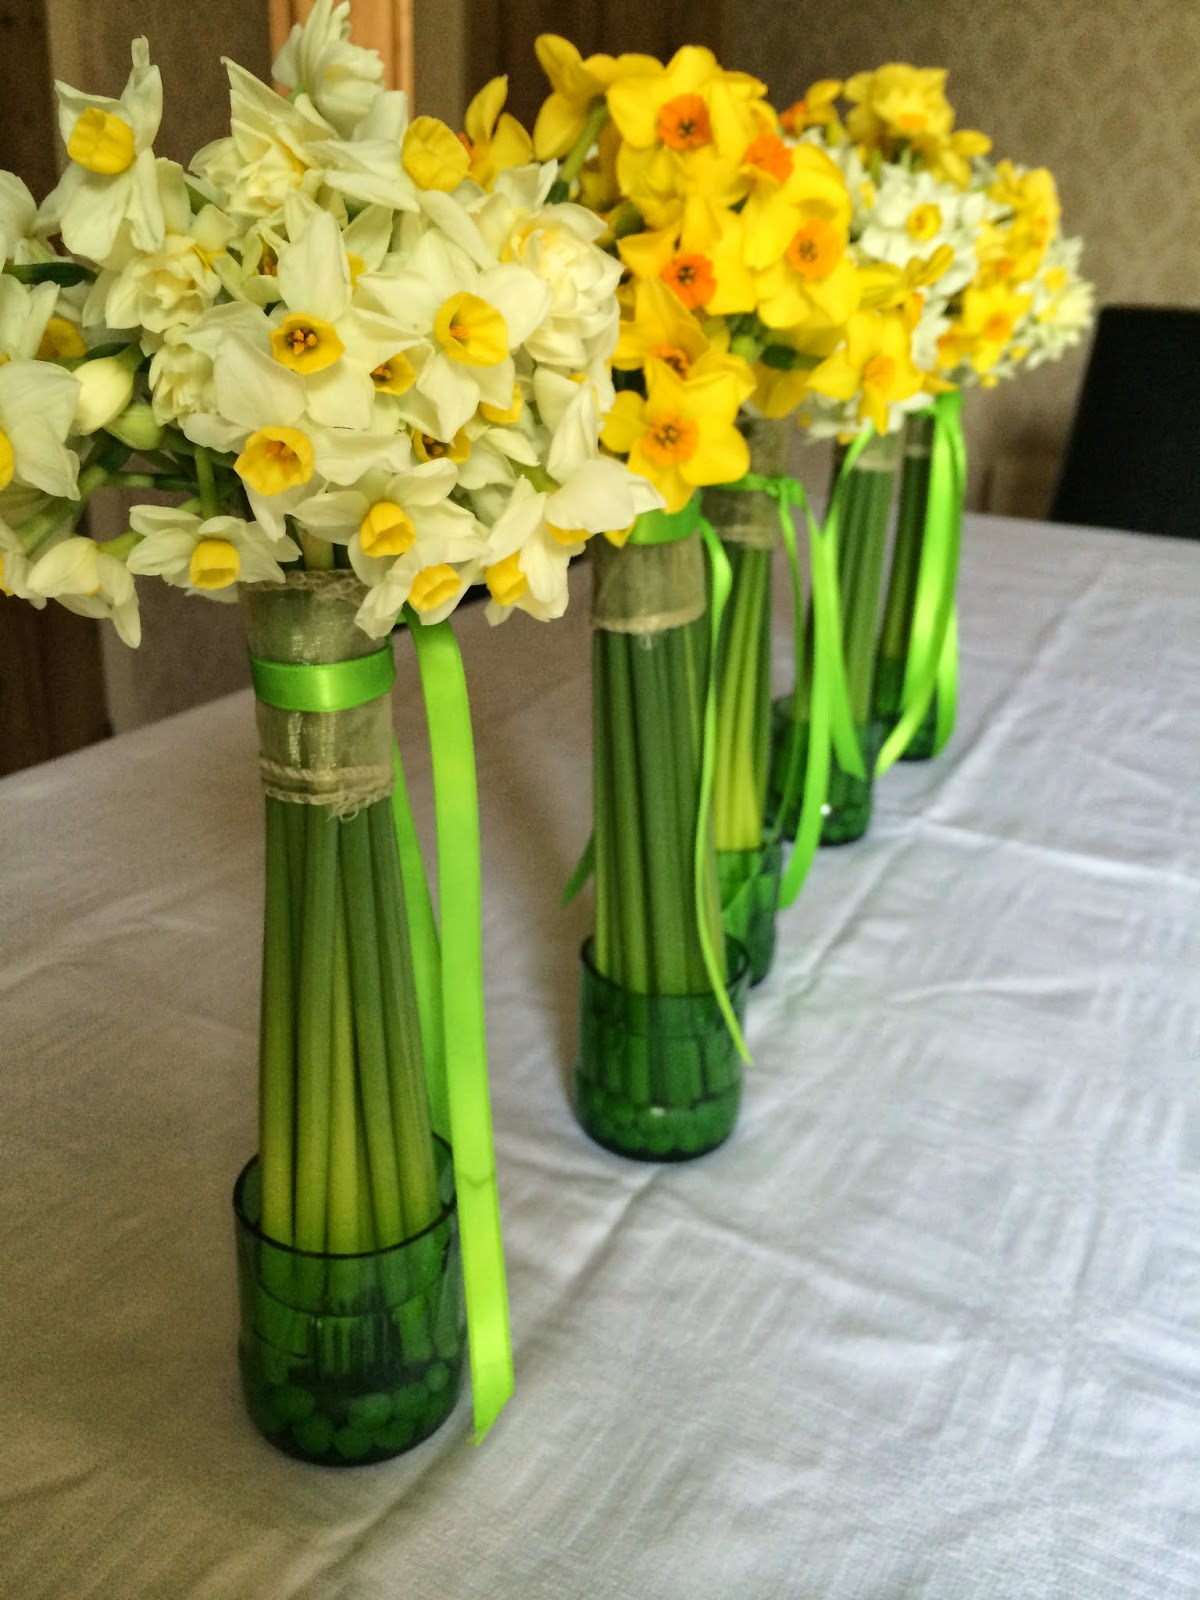 Gorgeous scented British narcissi in recycled bottle vases